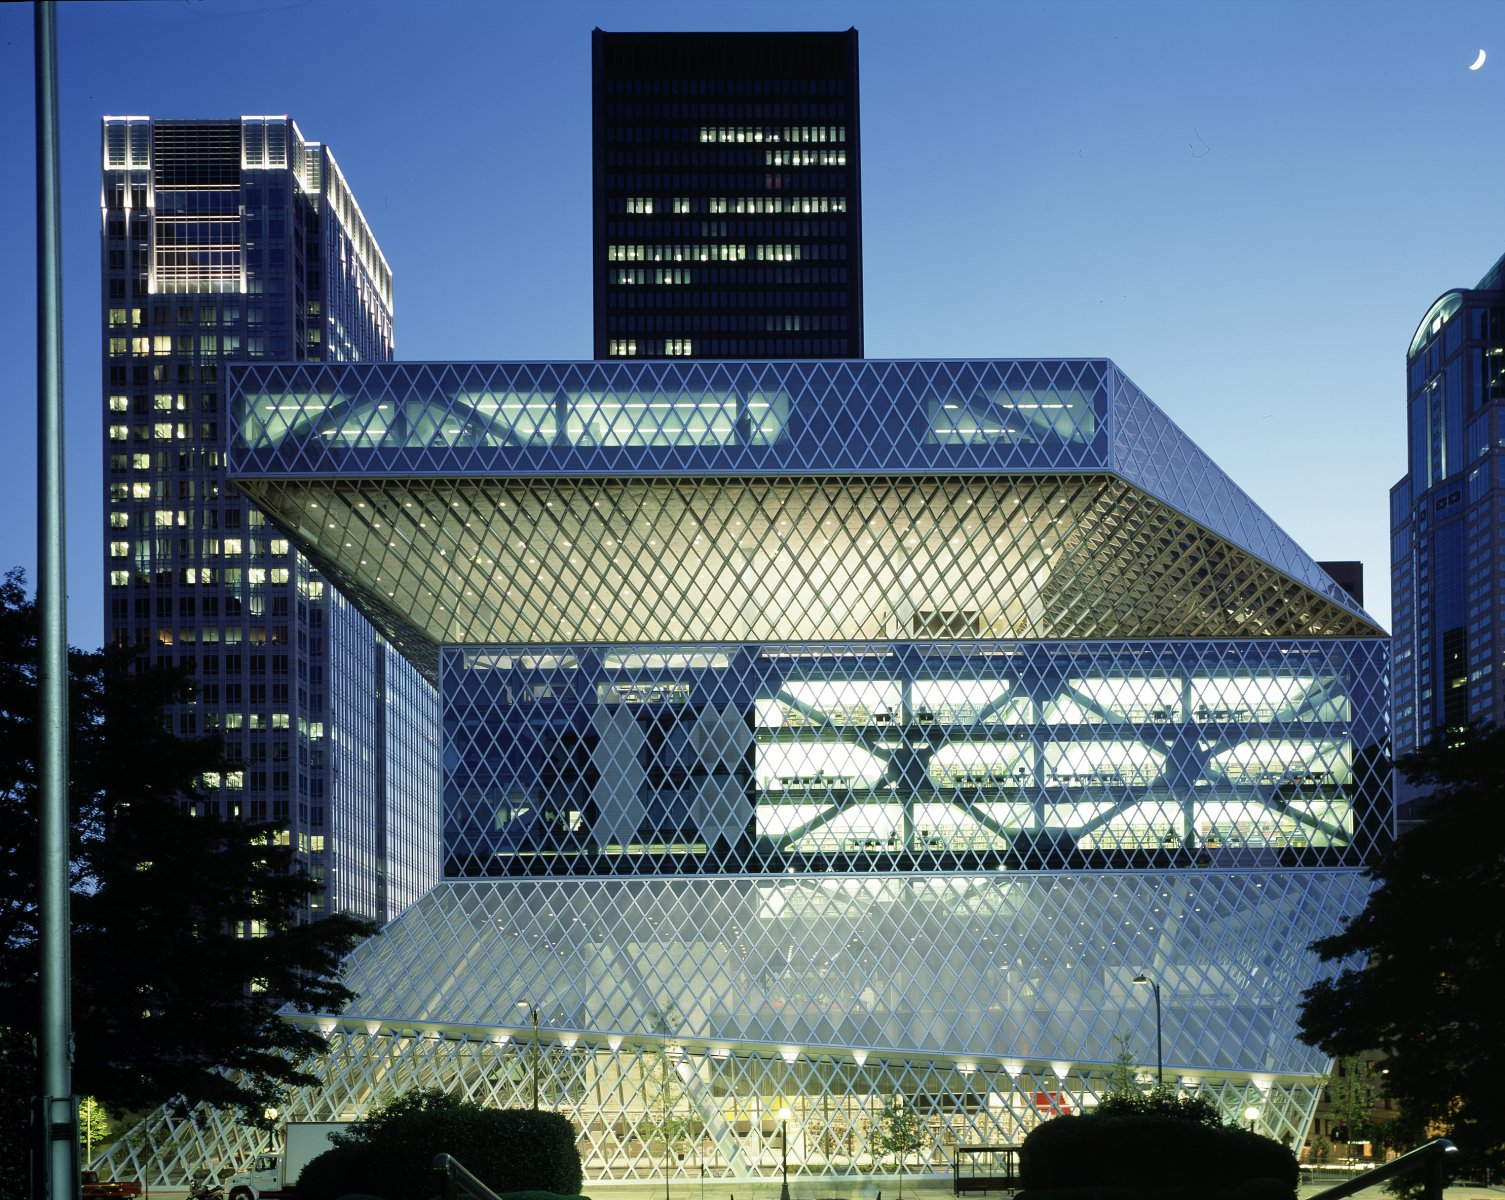 The Seattle Library